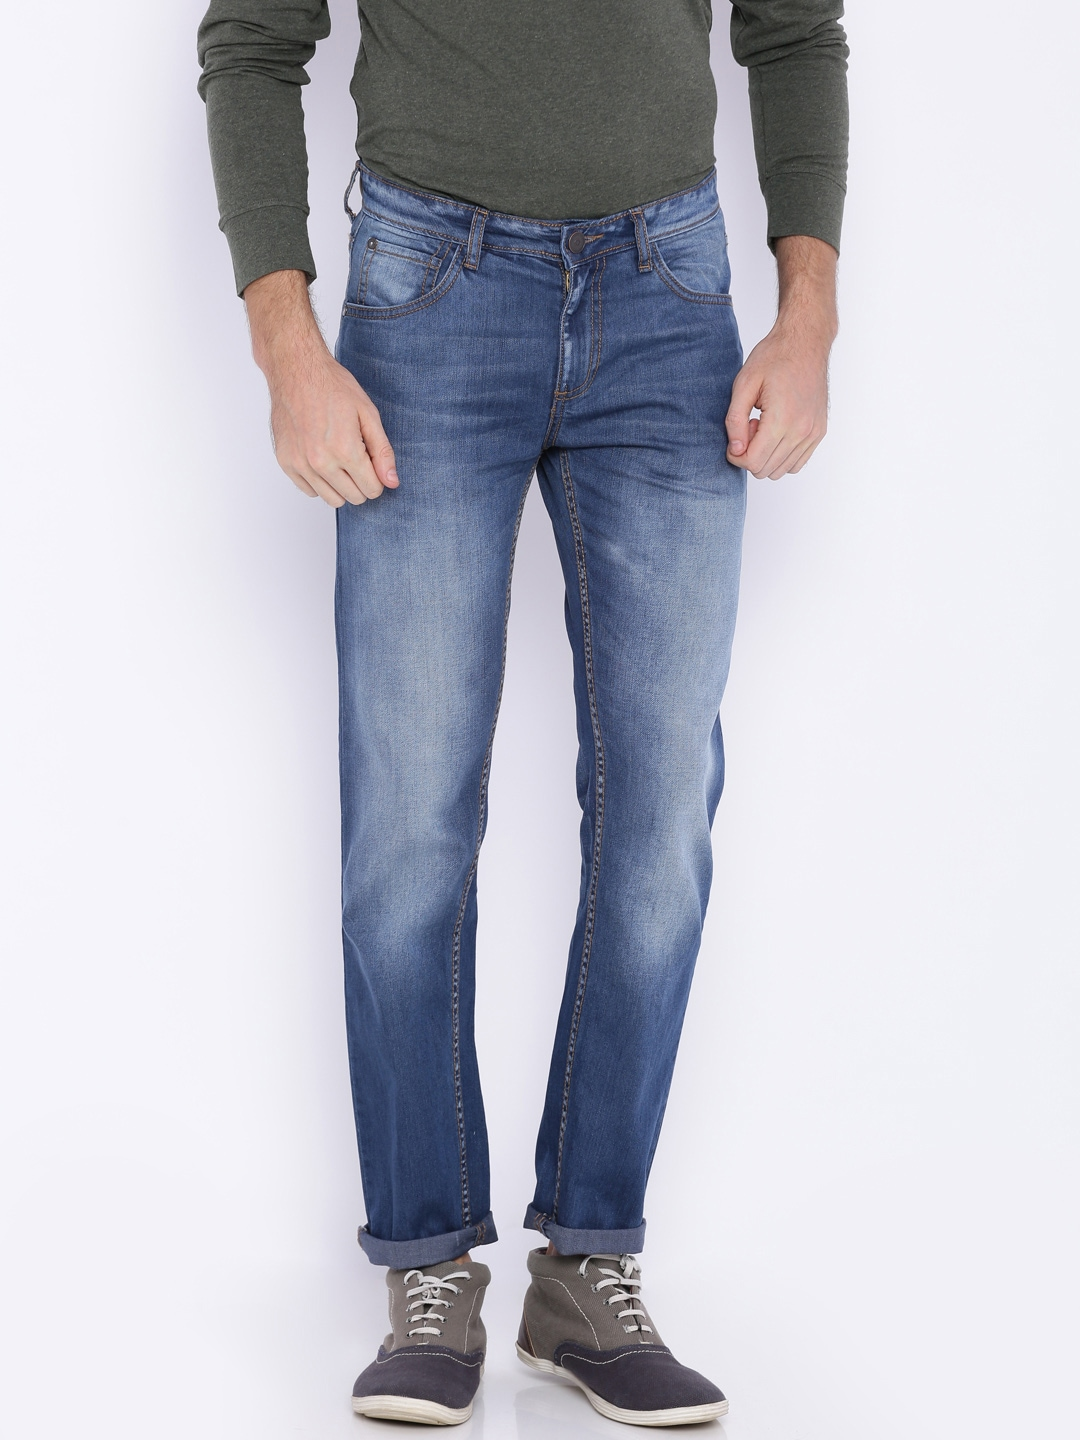 Shop mens jeans cheap sale online, you can buy black jeans, skinny jeans, slim fit jeans and ripped jeans for men at wholesale prices on loadingtag.ga FREE Shipping available worldwide.